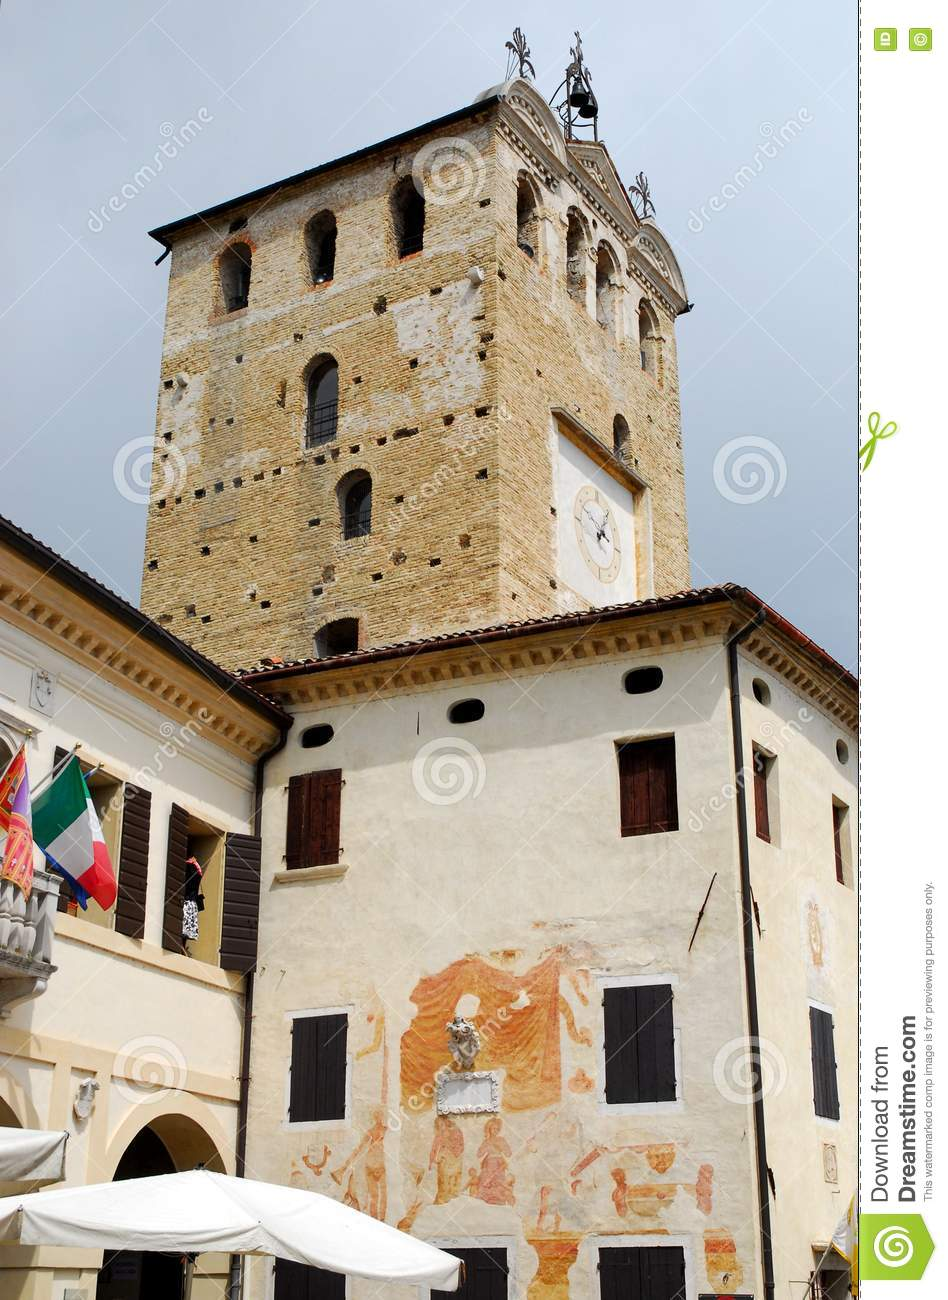 Tower and City Hall in Portobuffolè in the province of Treviso in the Veneto